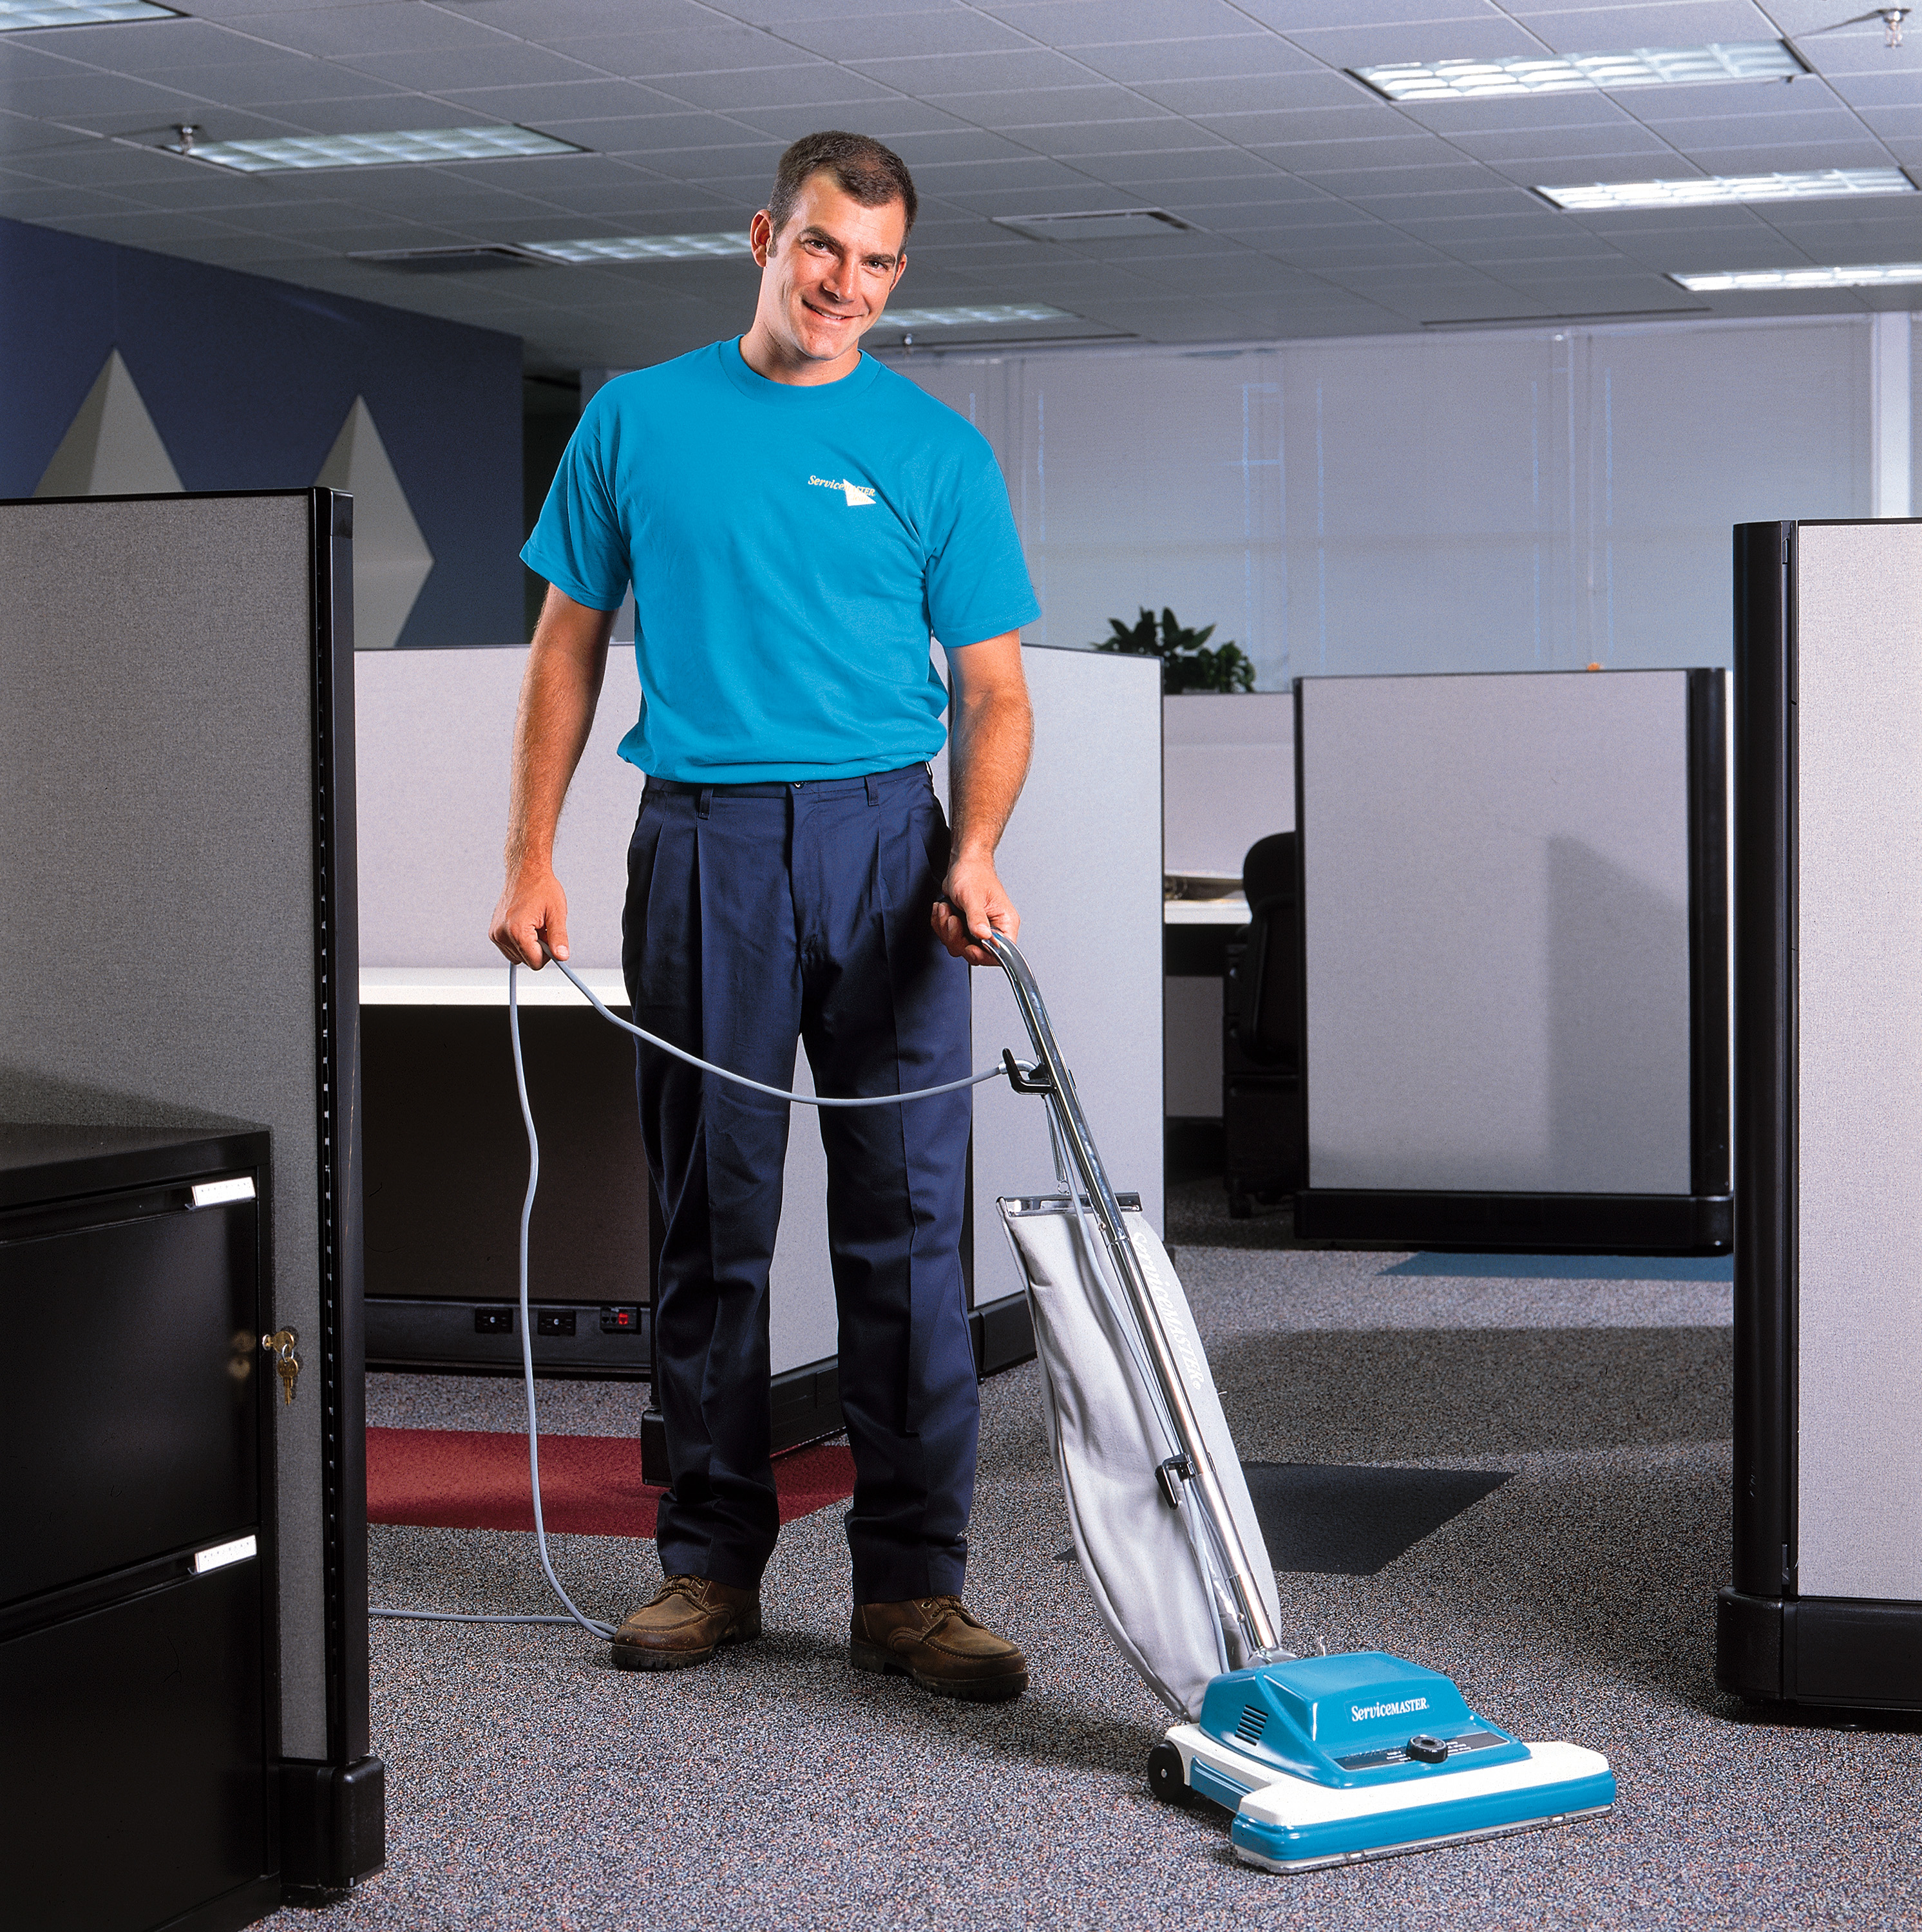 Servicemaster Janitorial By Bustos Weston Florida Fl